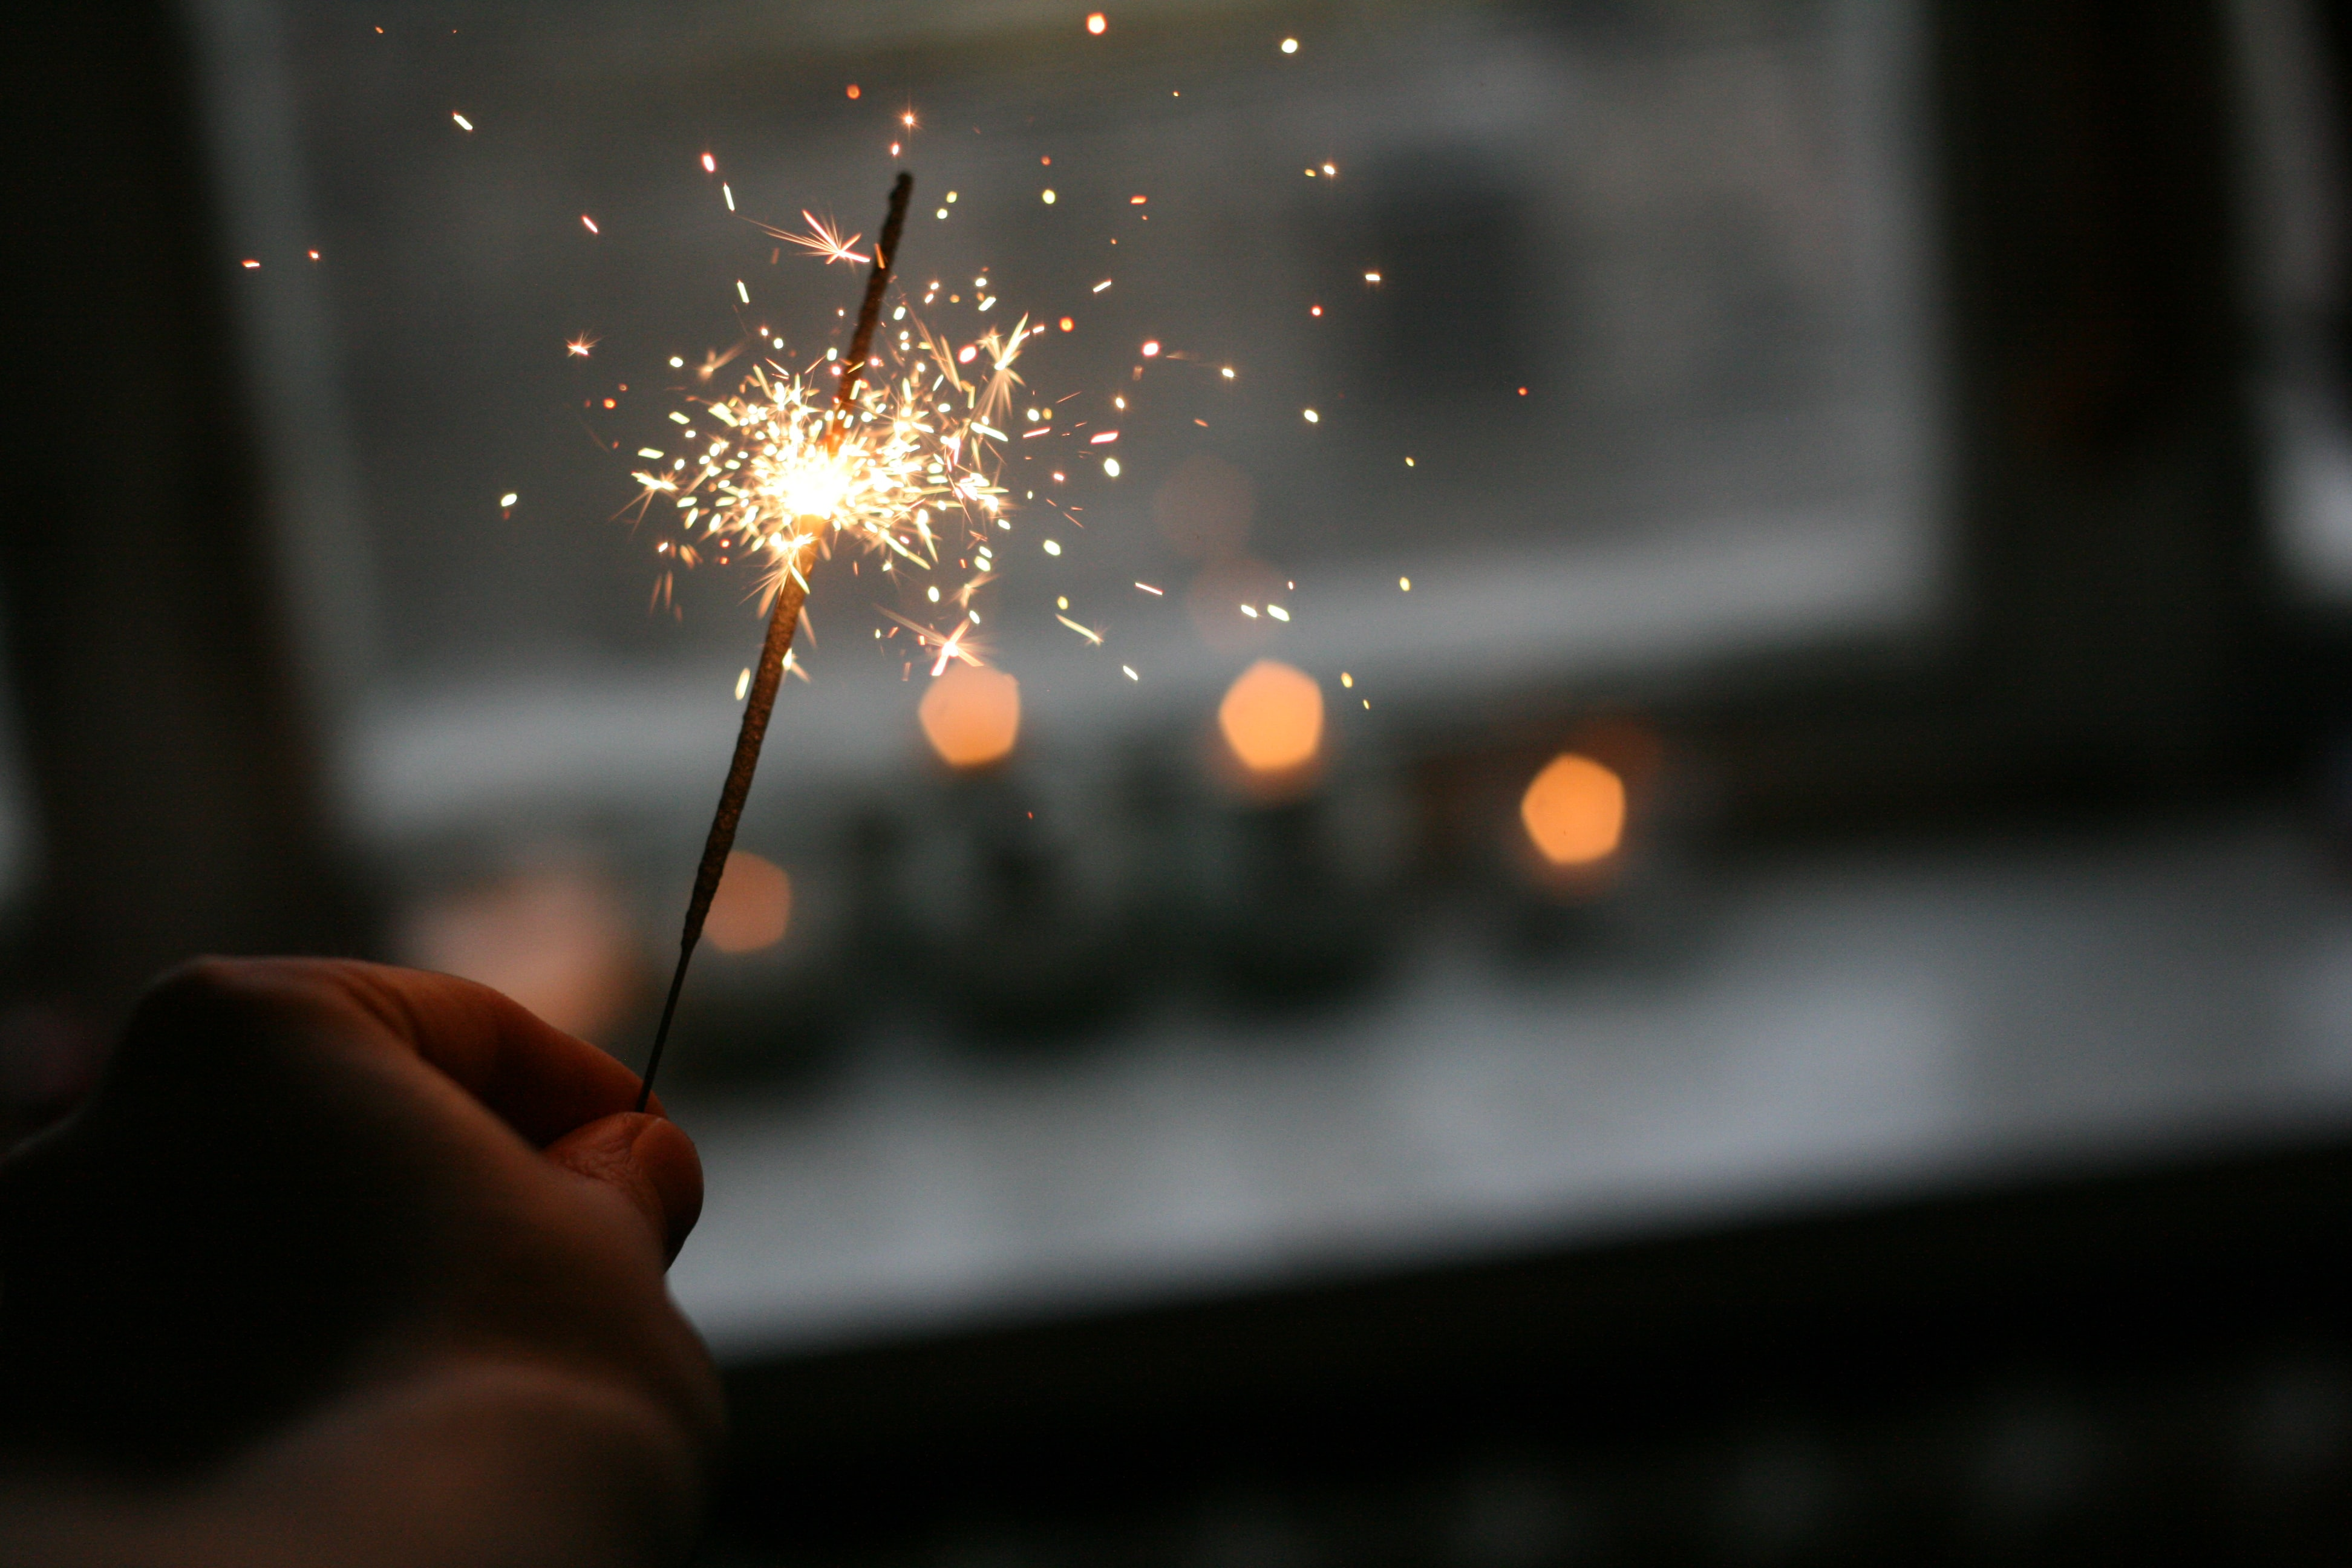 New Year Wallpapers: Free HD Download [500+ HQ]  Unsplash